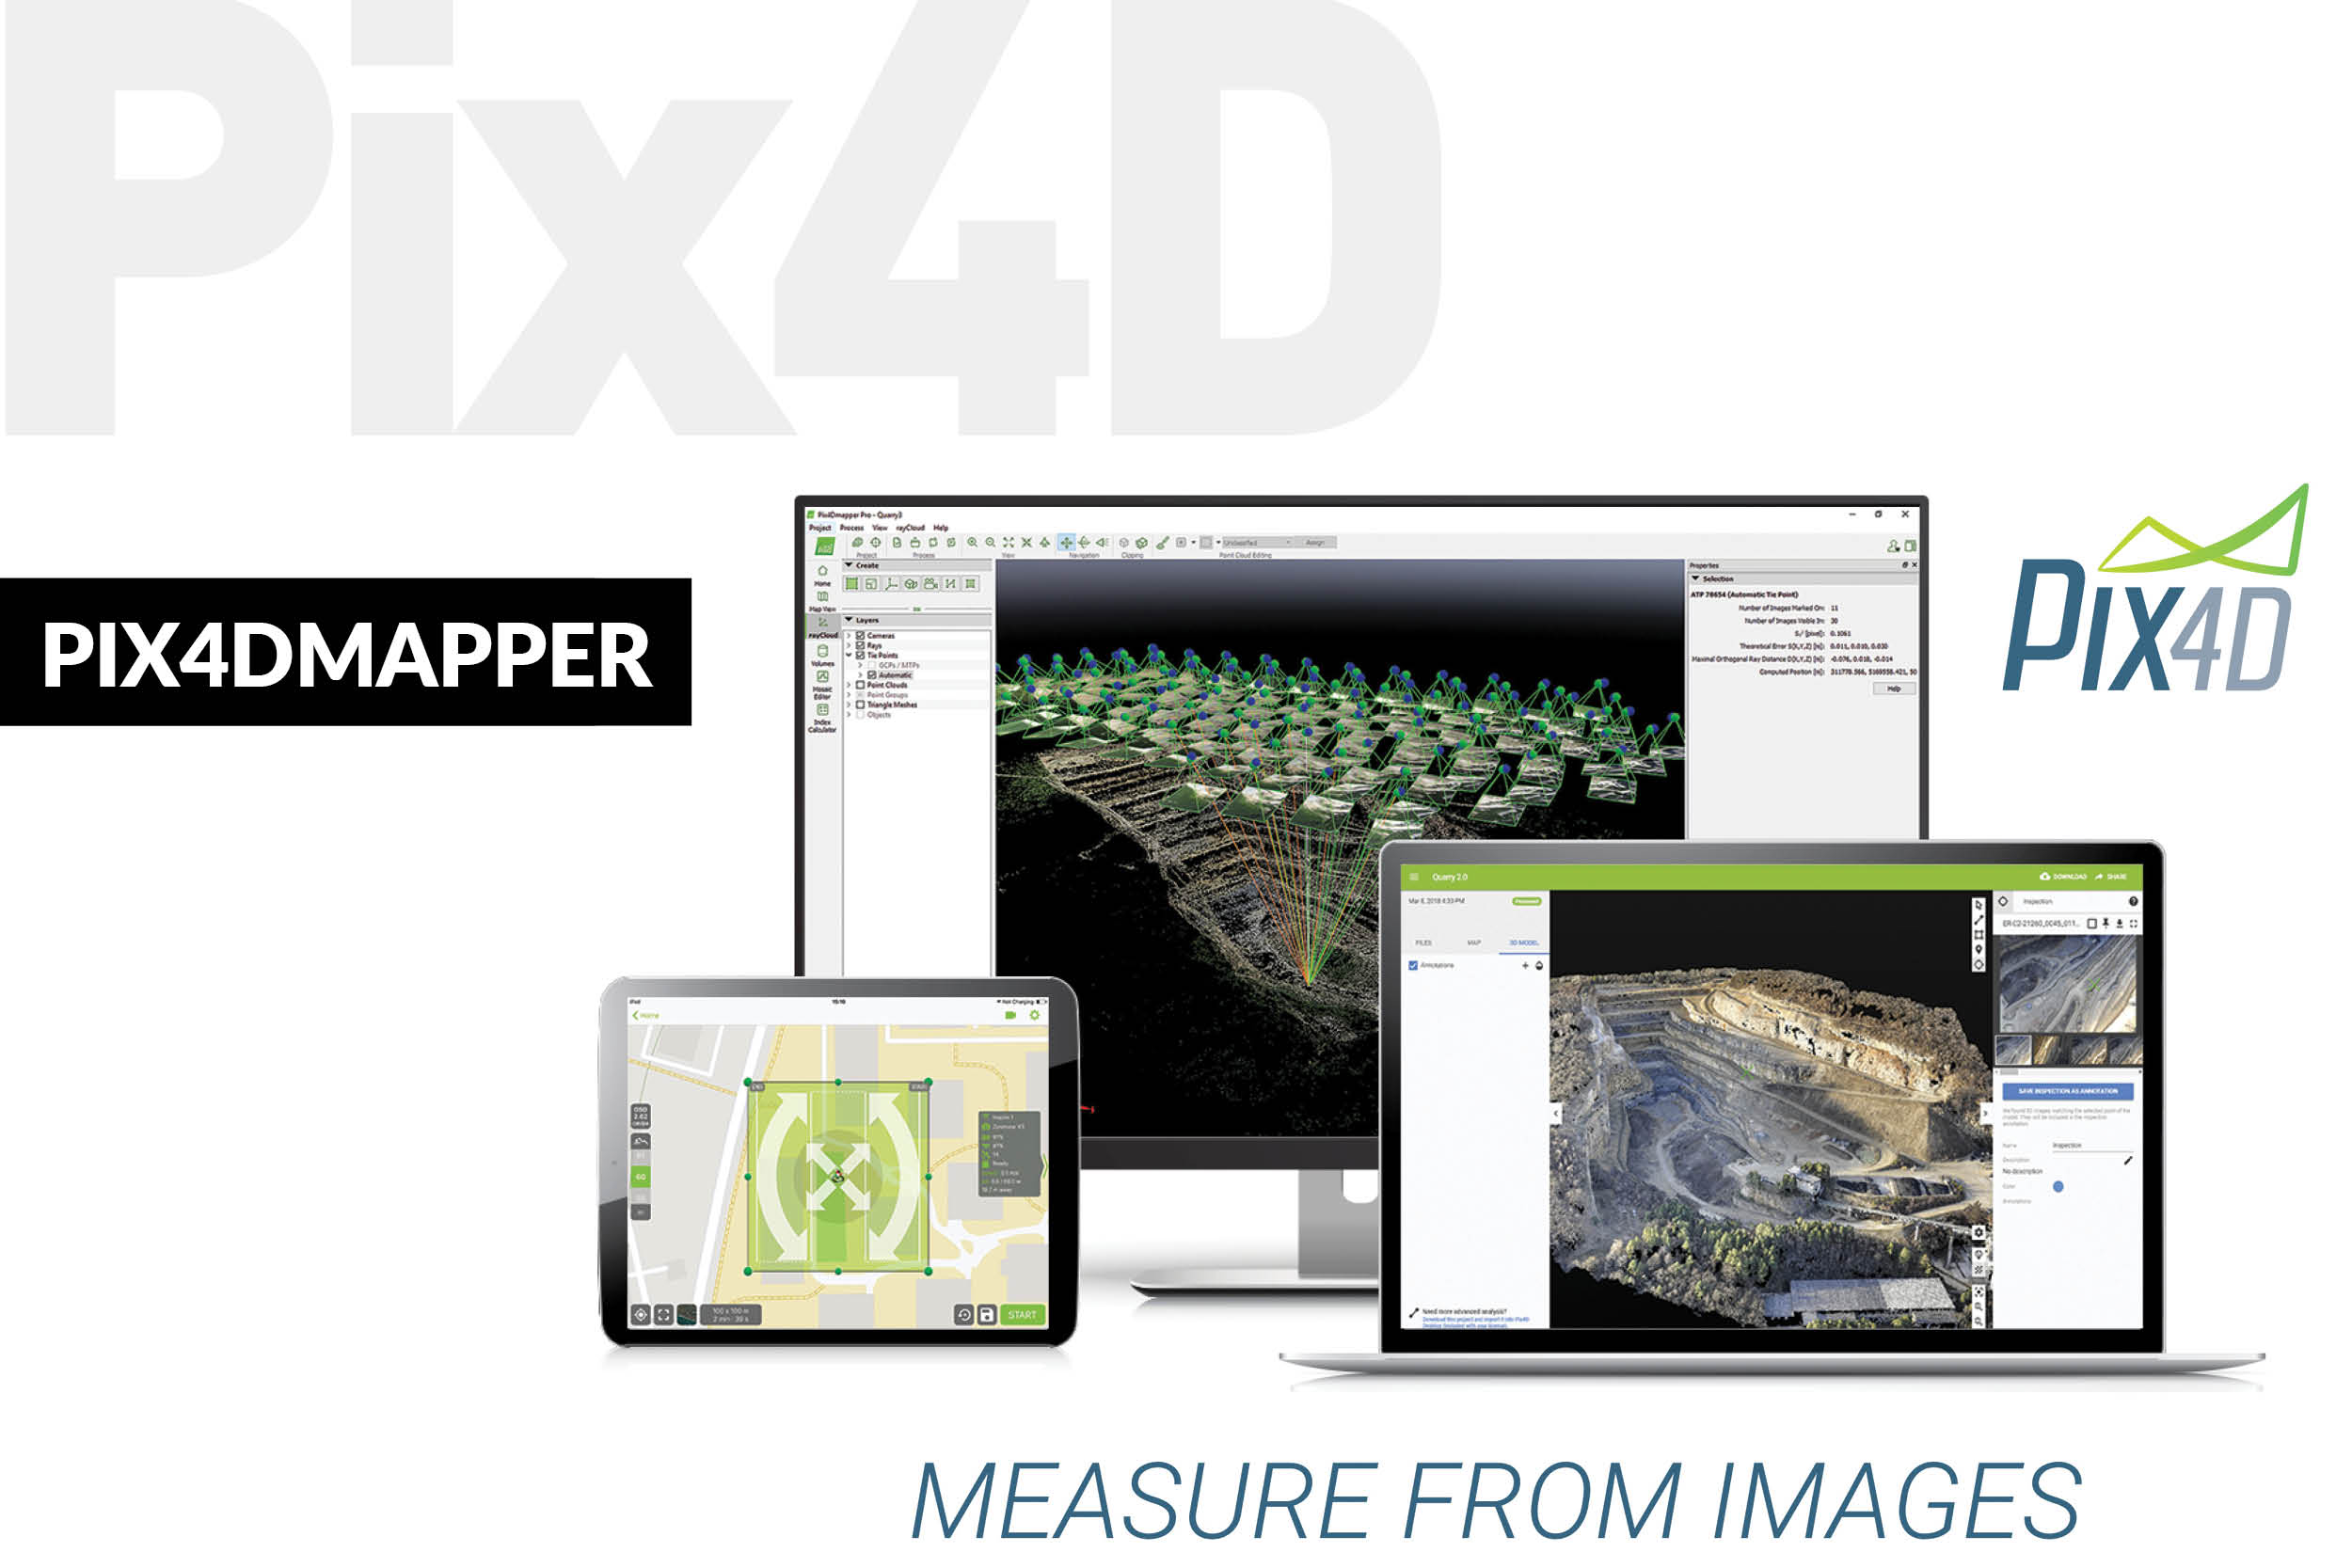 Pix4D launches Pix4Dmapper, capable of converting images into